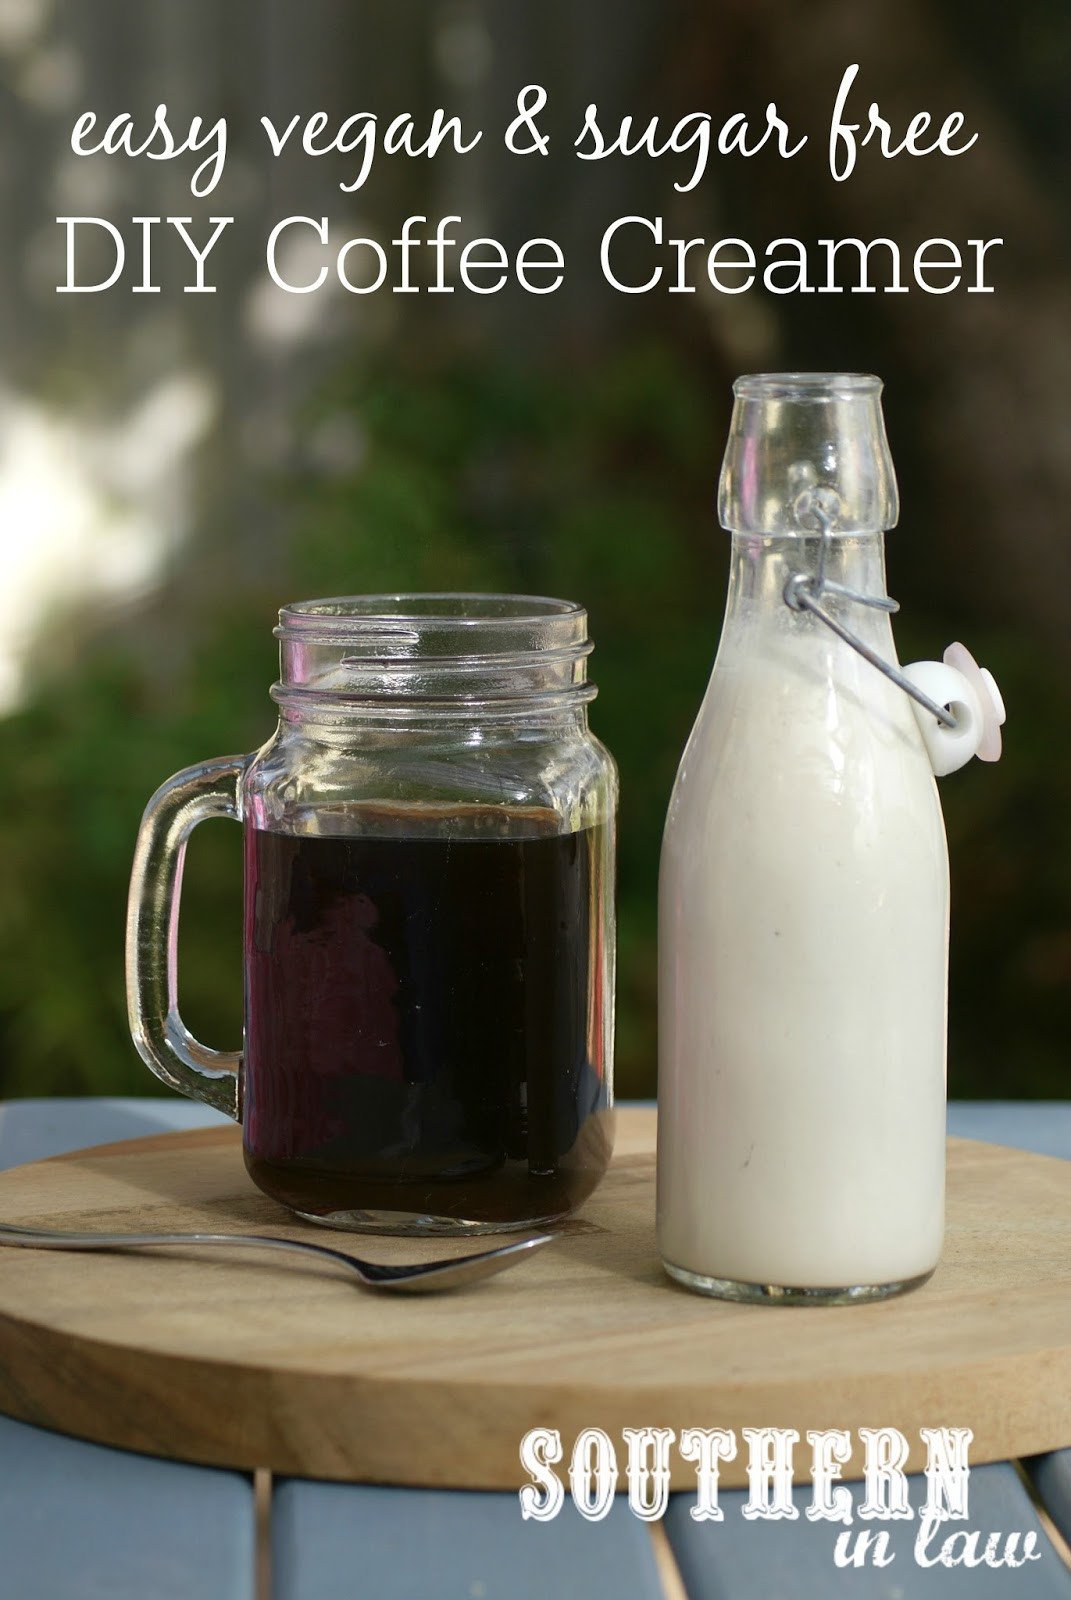 Best ideas about DIY Coffee Creamer . Save or Pin Southern In Law Recipe Easy Vegan DIY Coffee Creamer Now.